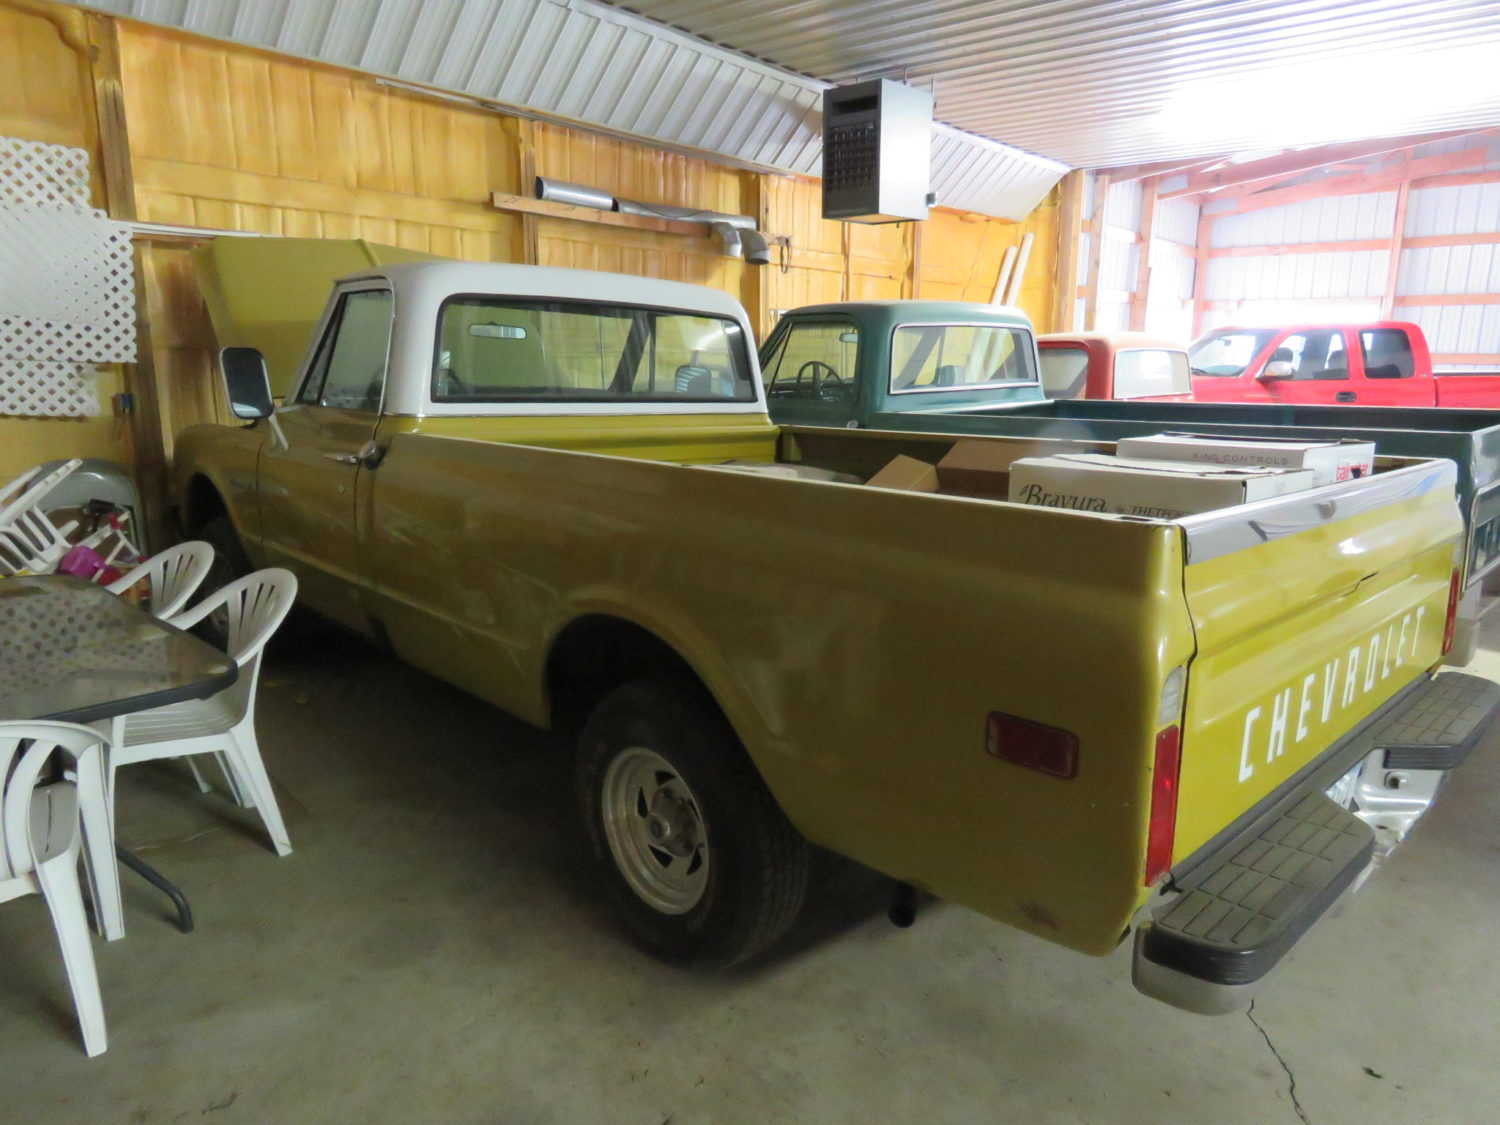 Chevrolet Pickups & C-10/20 Parts, Chevelle, & More Collector Vehicles- The Larry Zuraff Collection - image 2